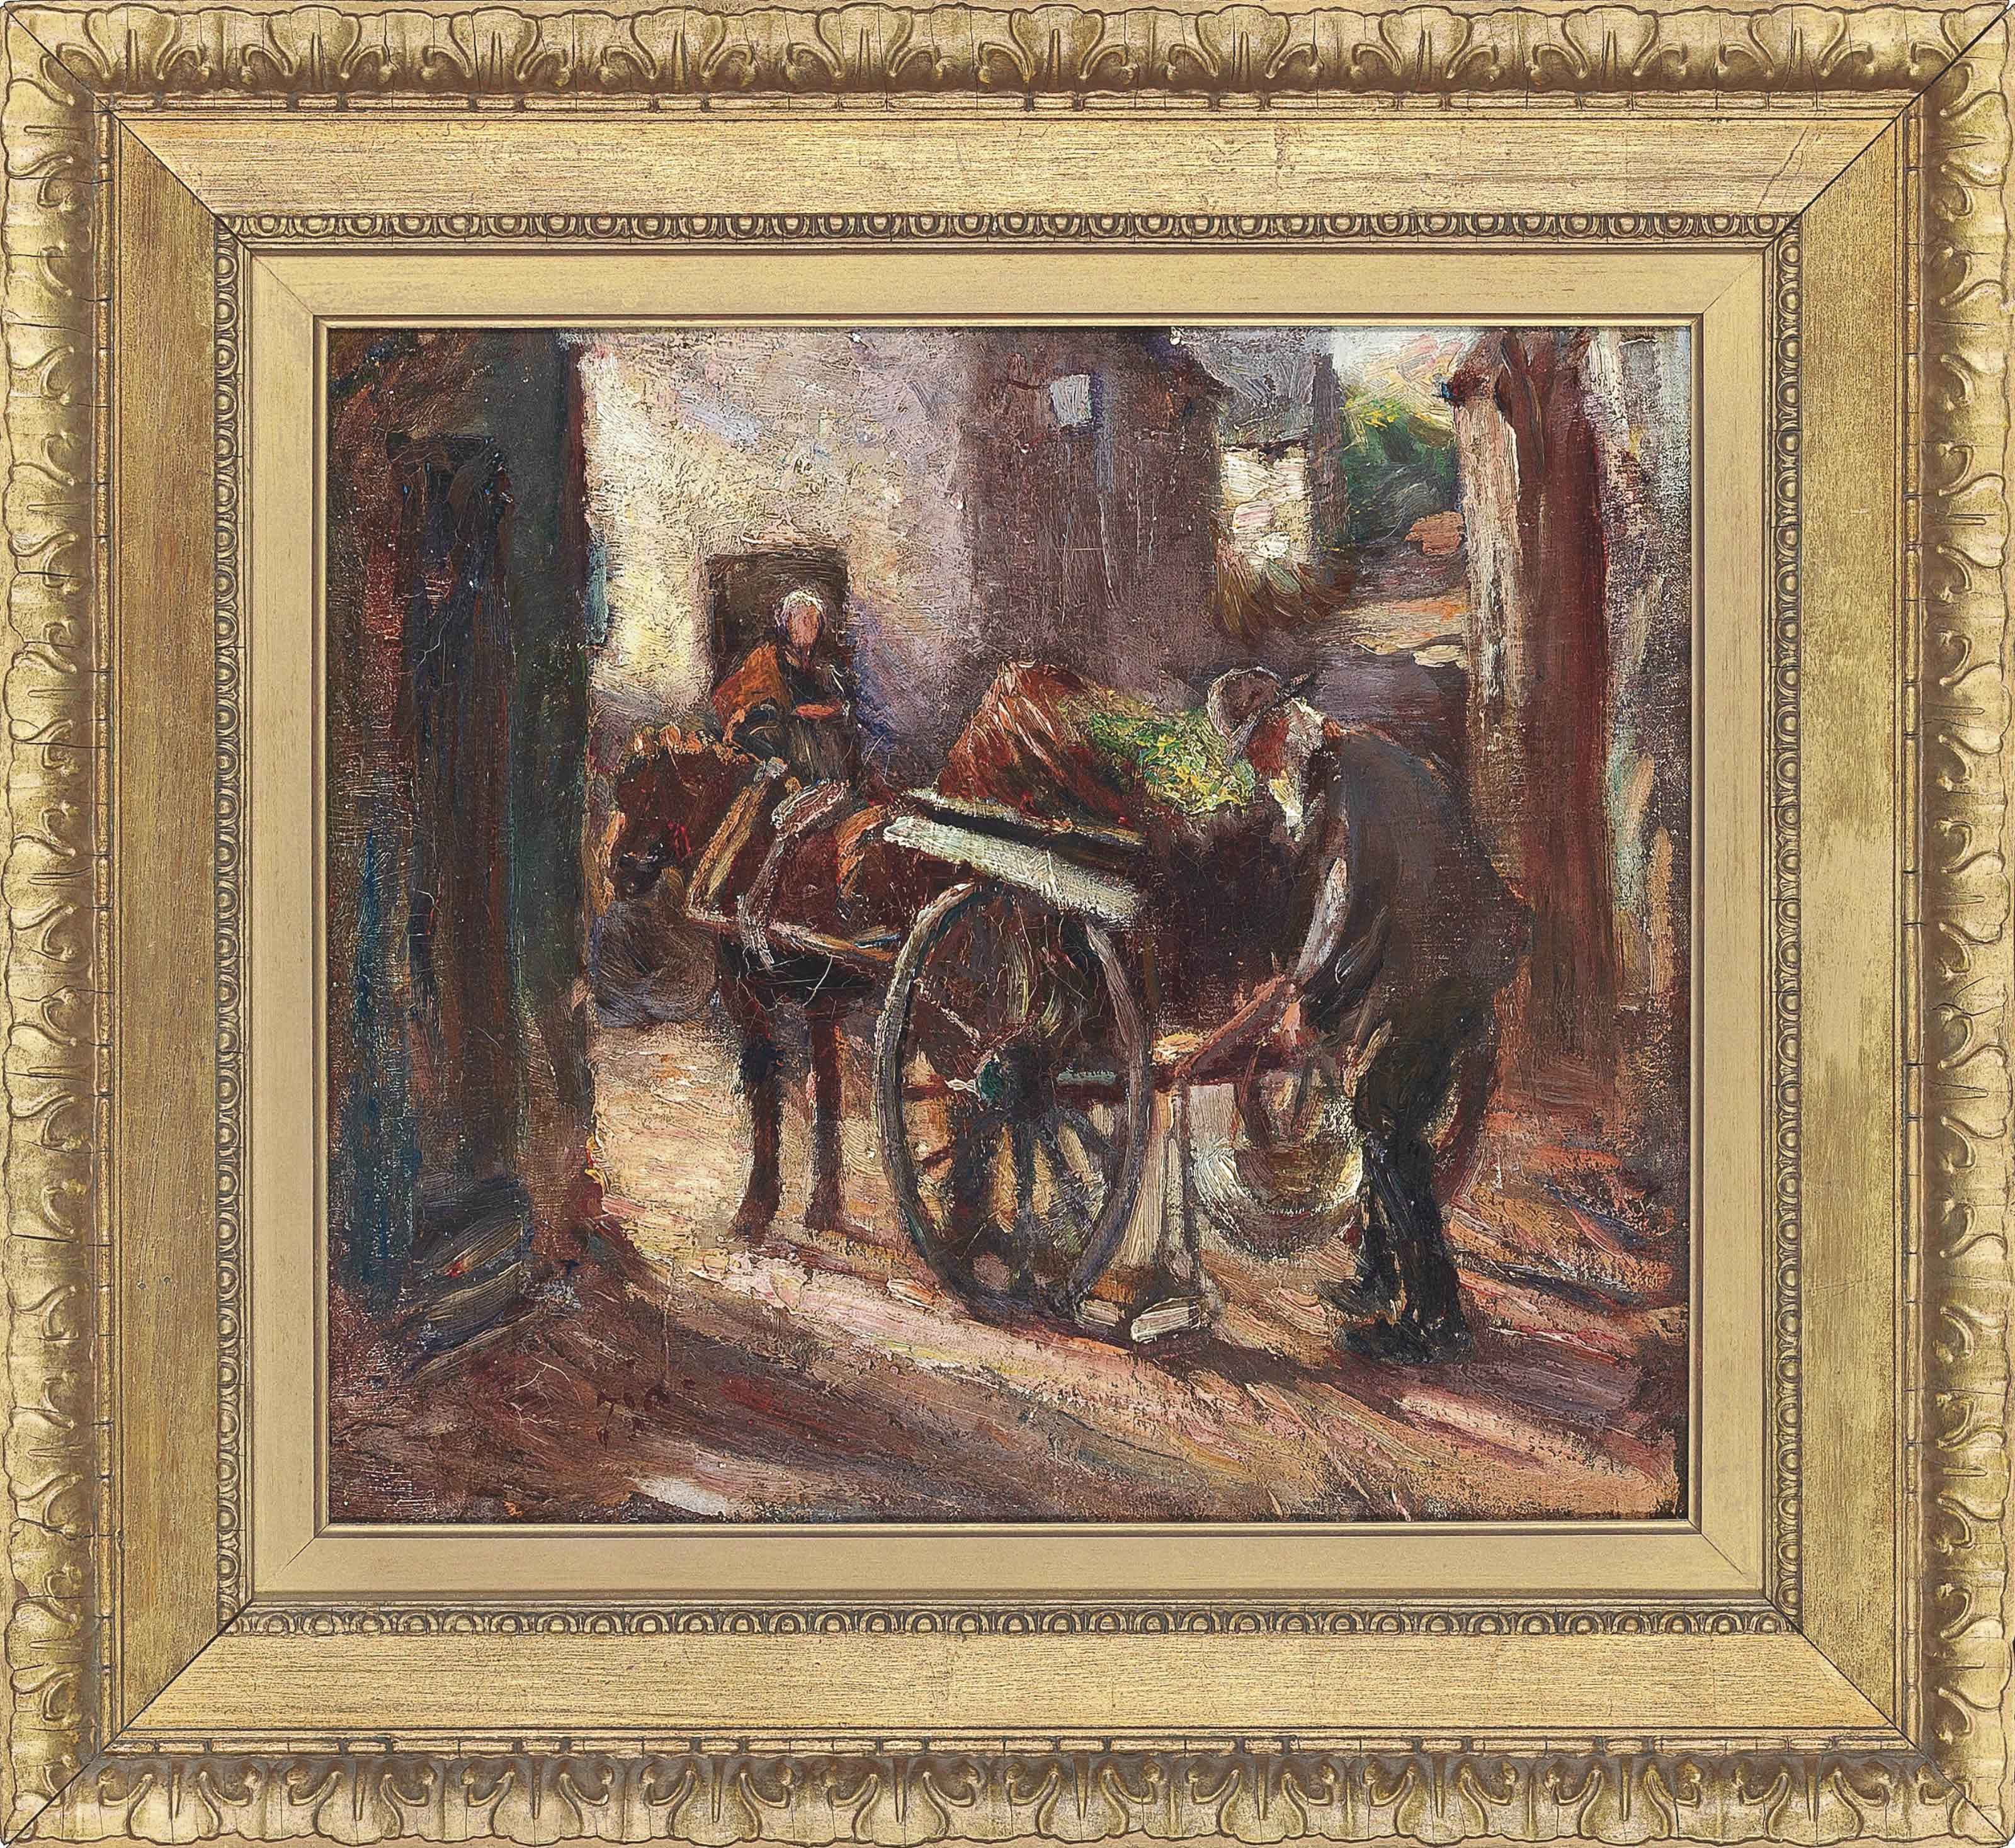 The vegetable cart